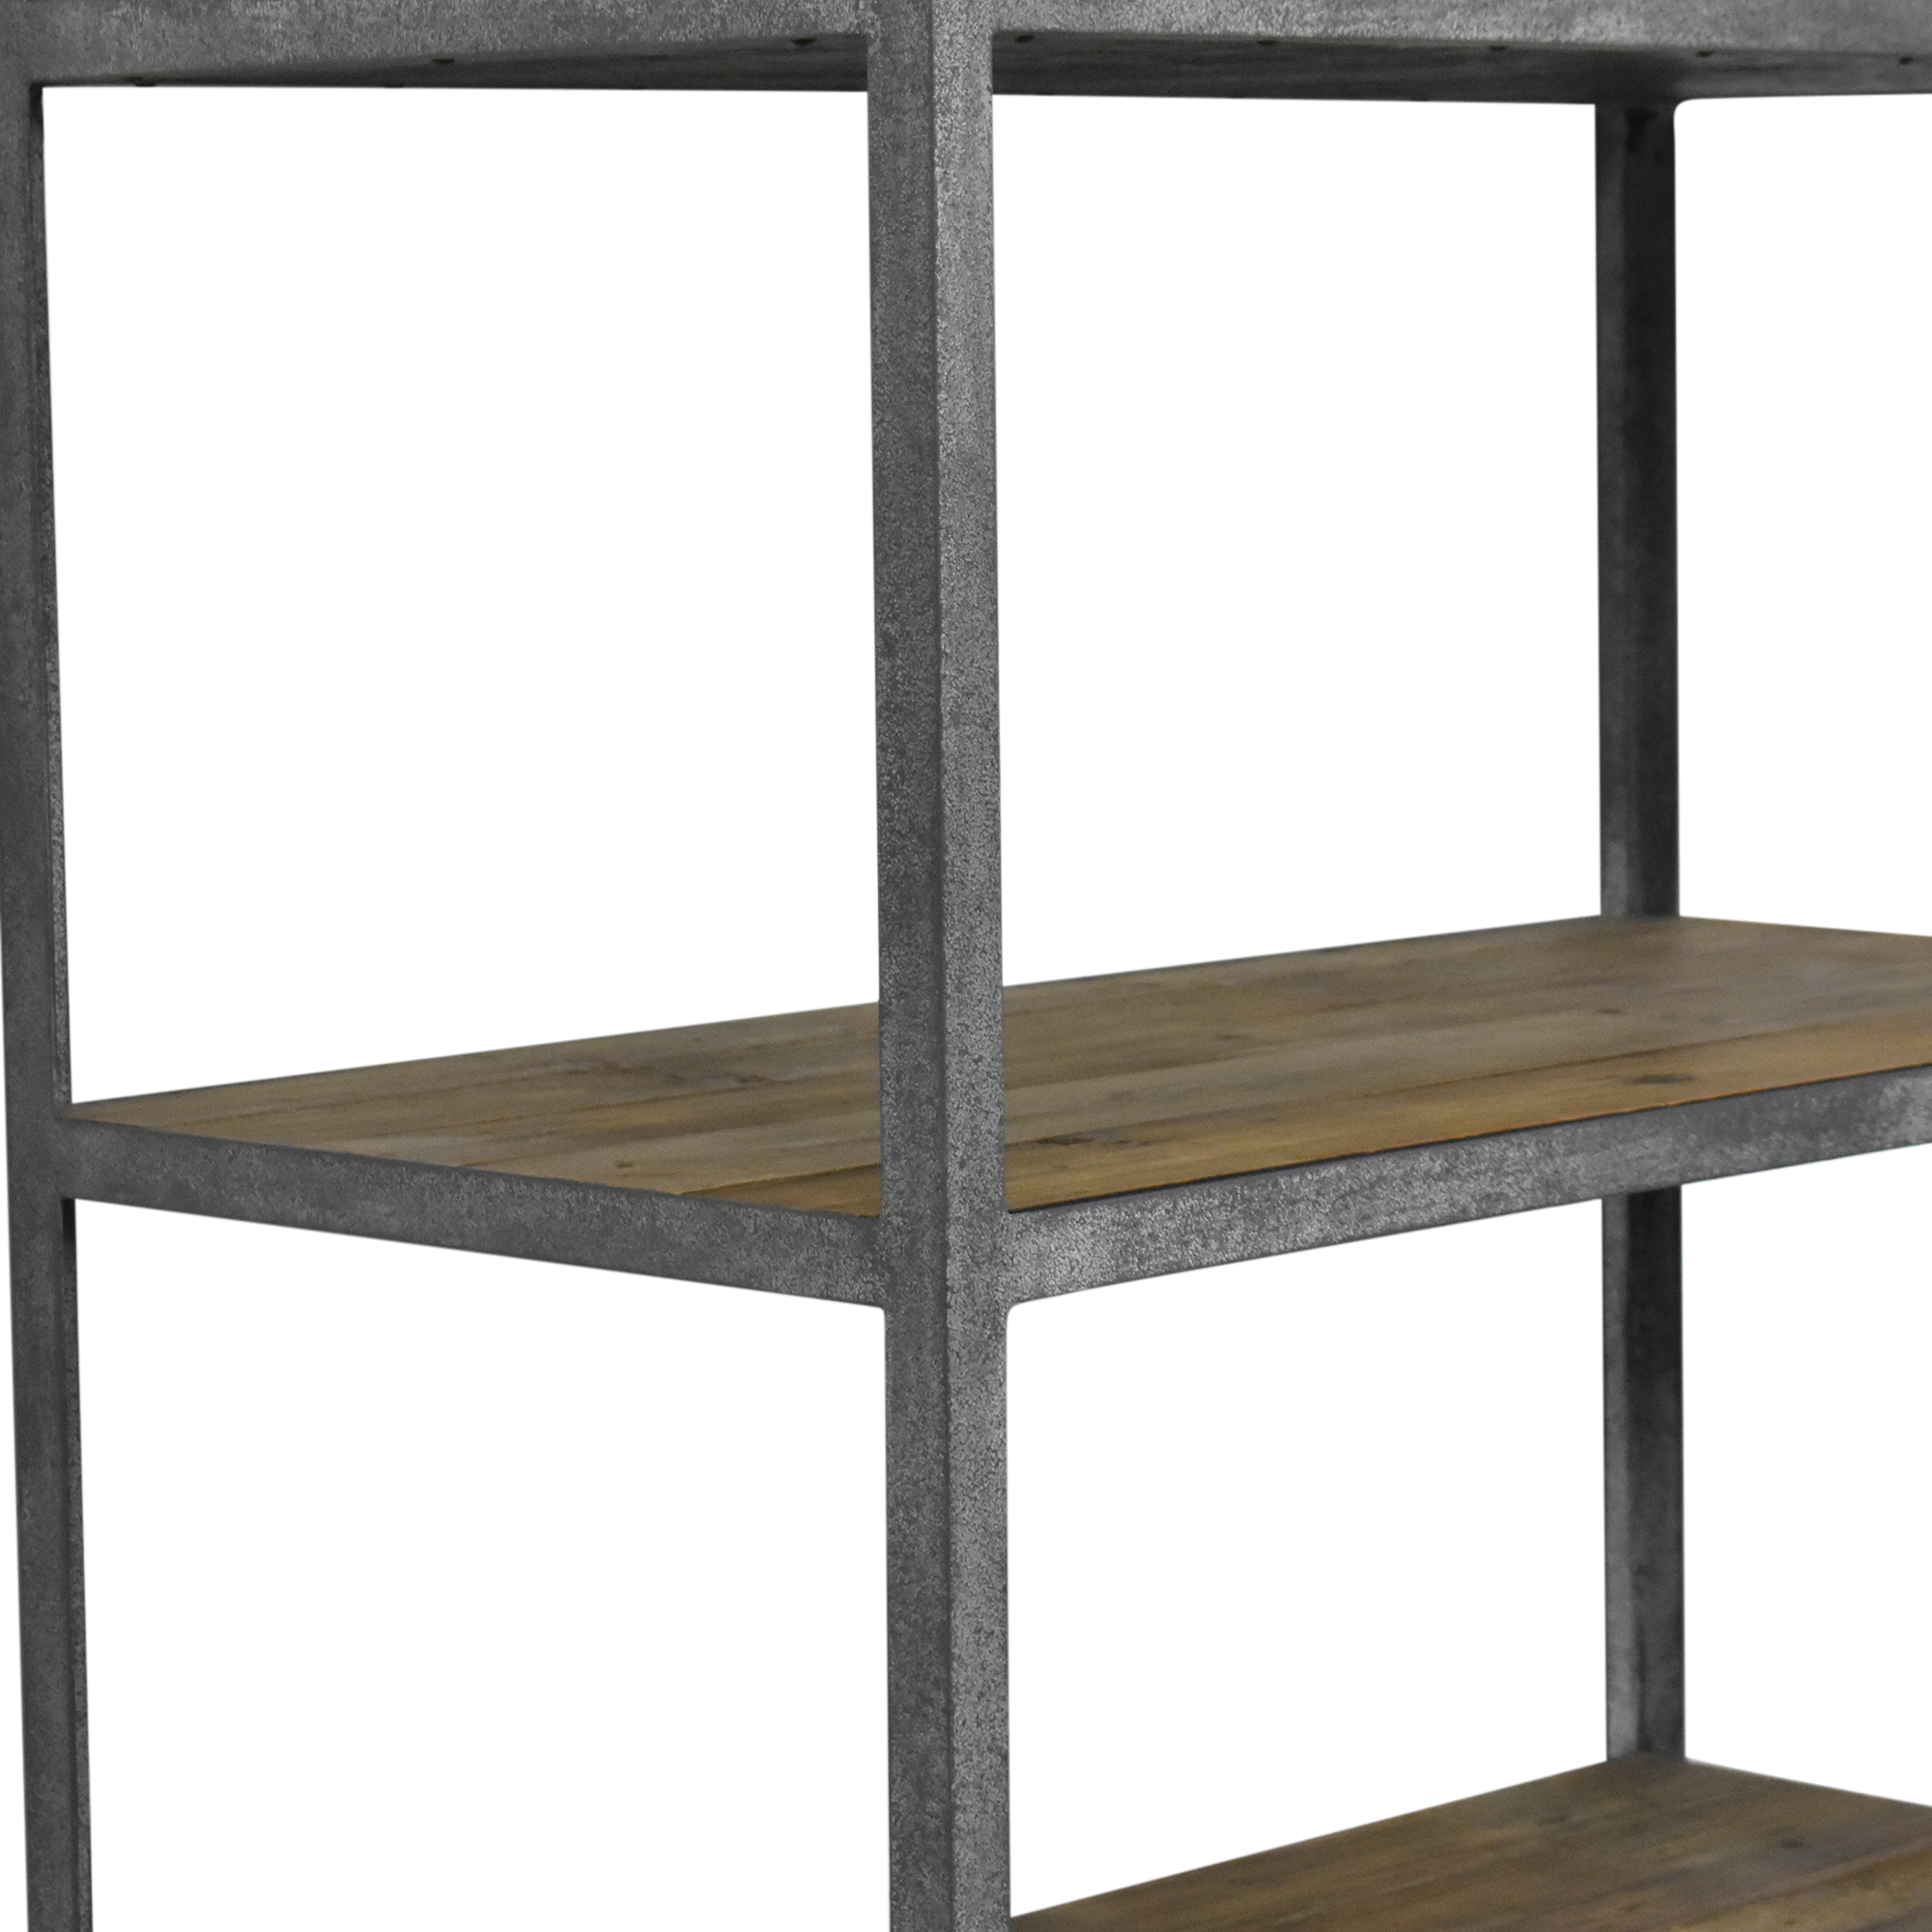 Restoration Hardware Restoration Hardware Vintage Industrial Single Shelving second hand